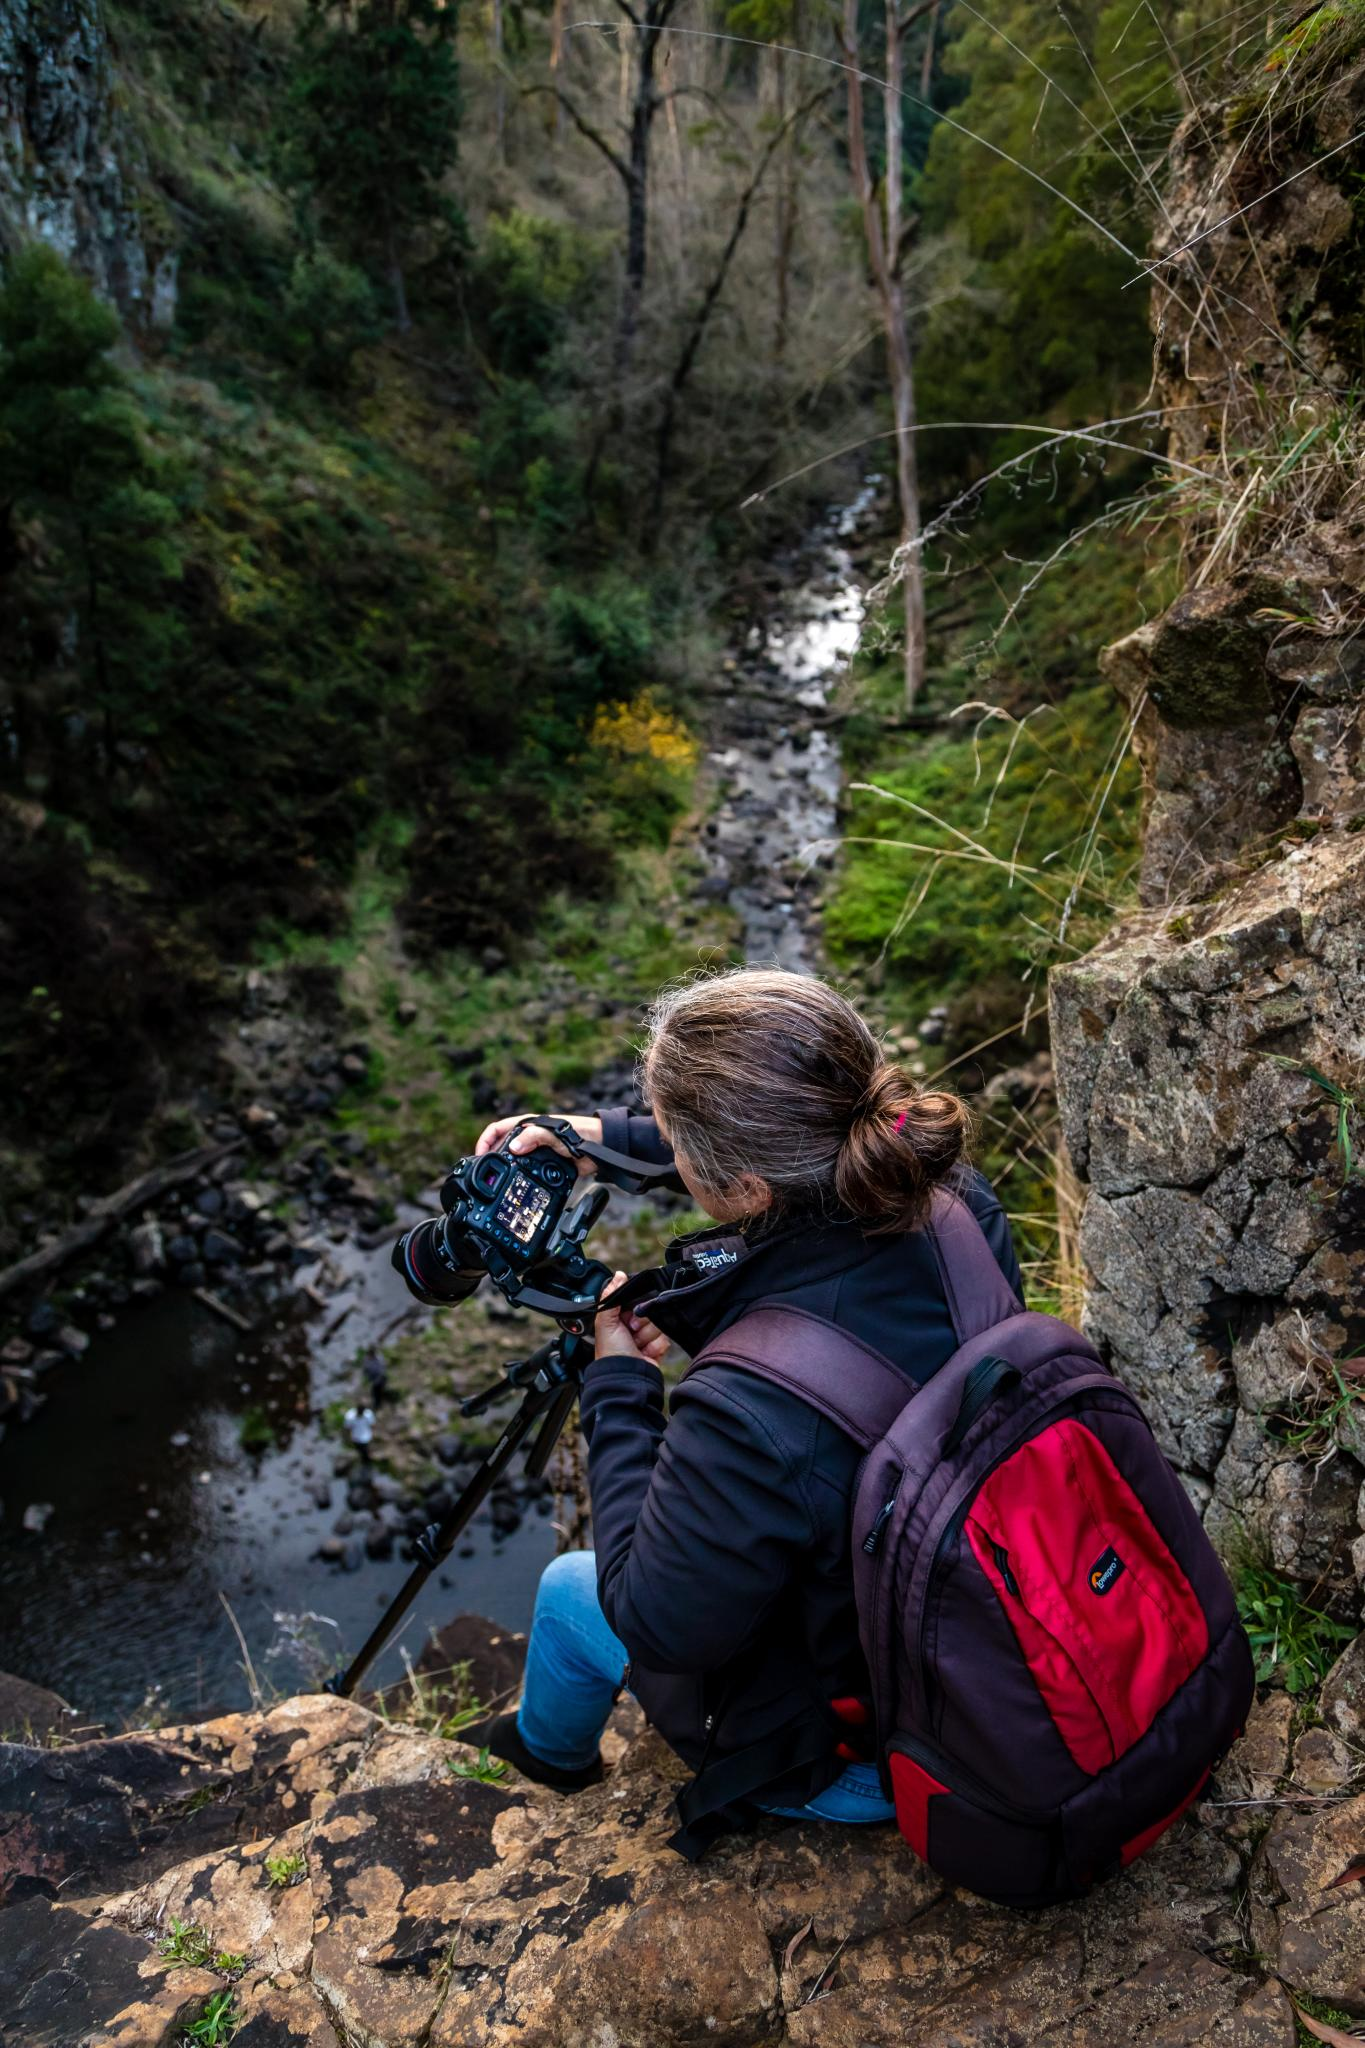 A photographer sits on the edge of the falls. the falls are a 32 metre drop to the river bed below.  Russell Charters Images. This work is licensed under Creative Commons.  https://www.flickr.com/photos/russellcharters/27560443307